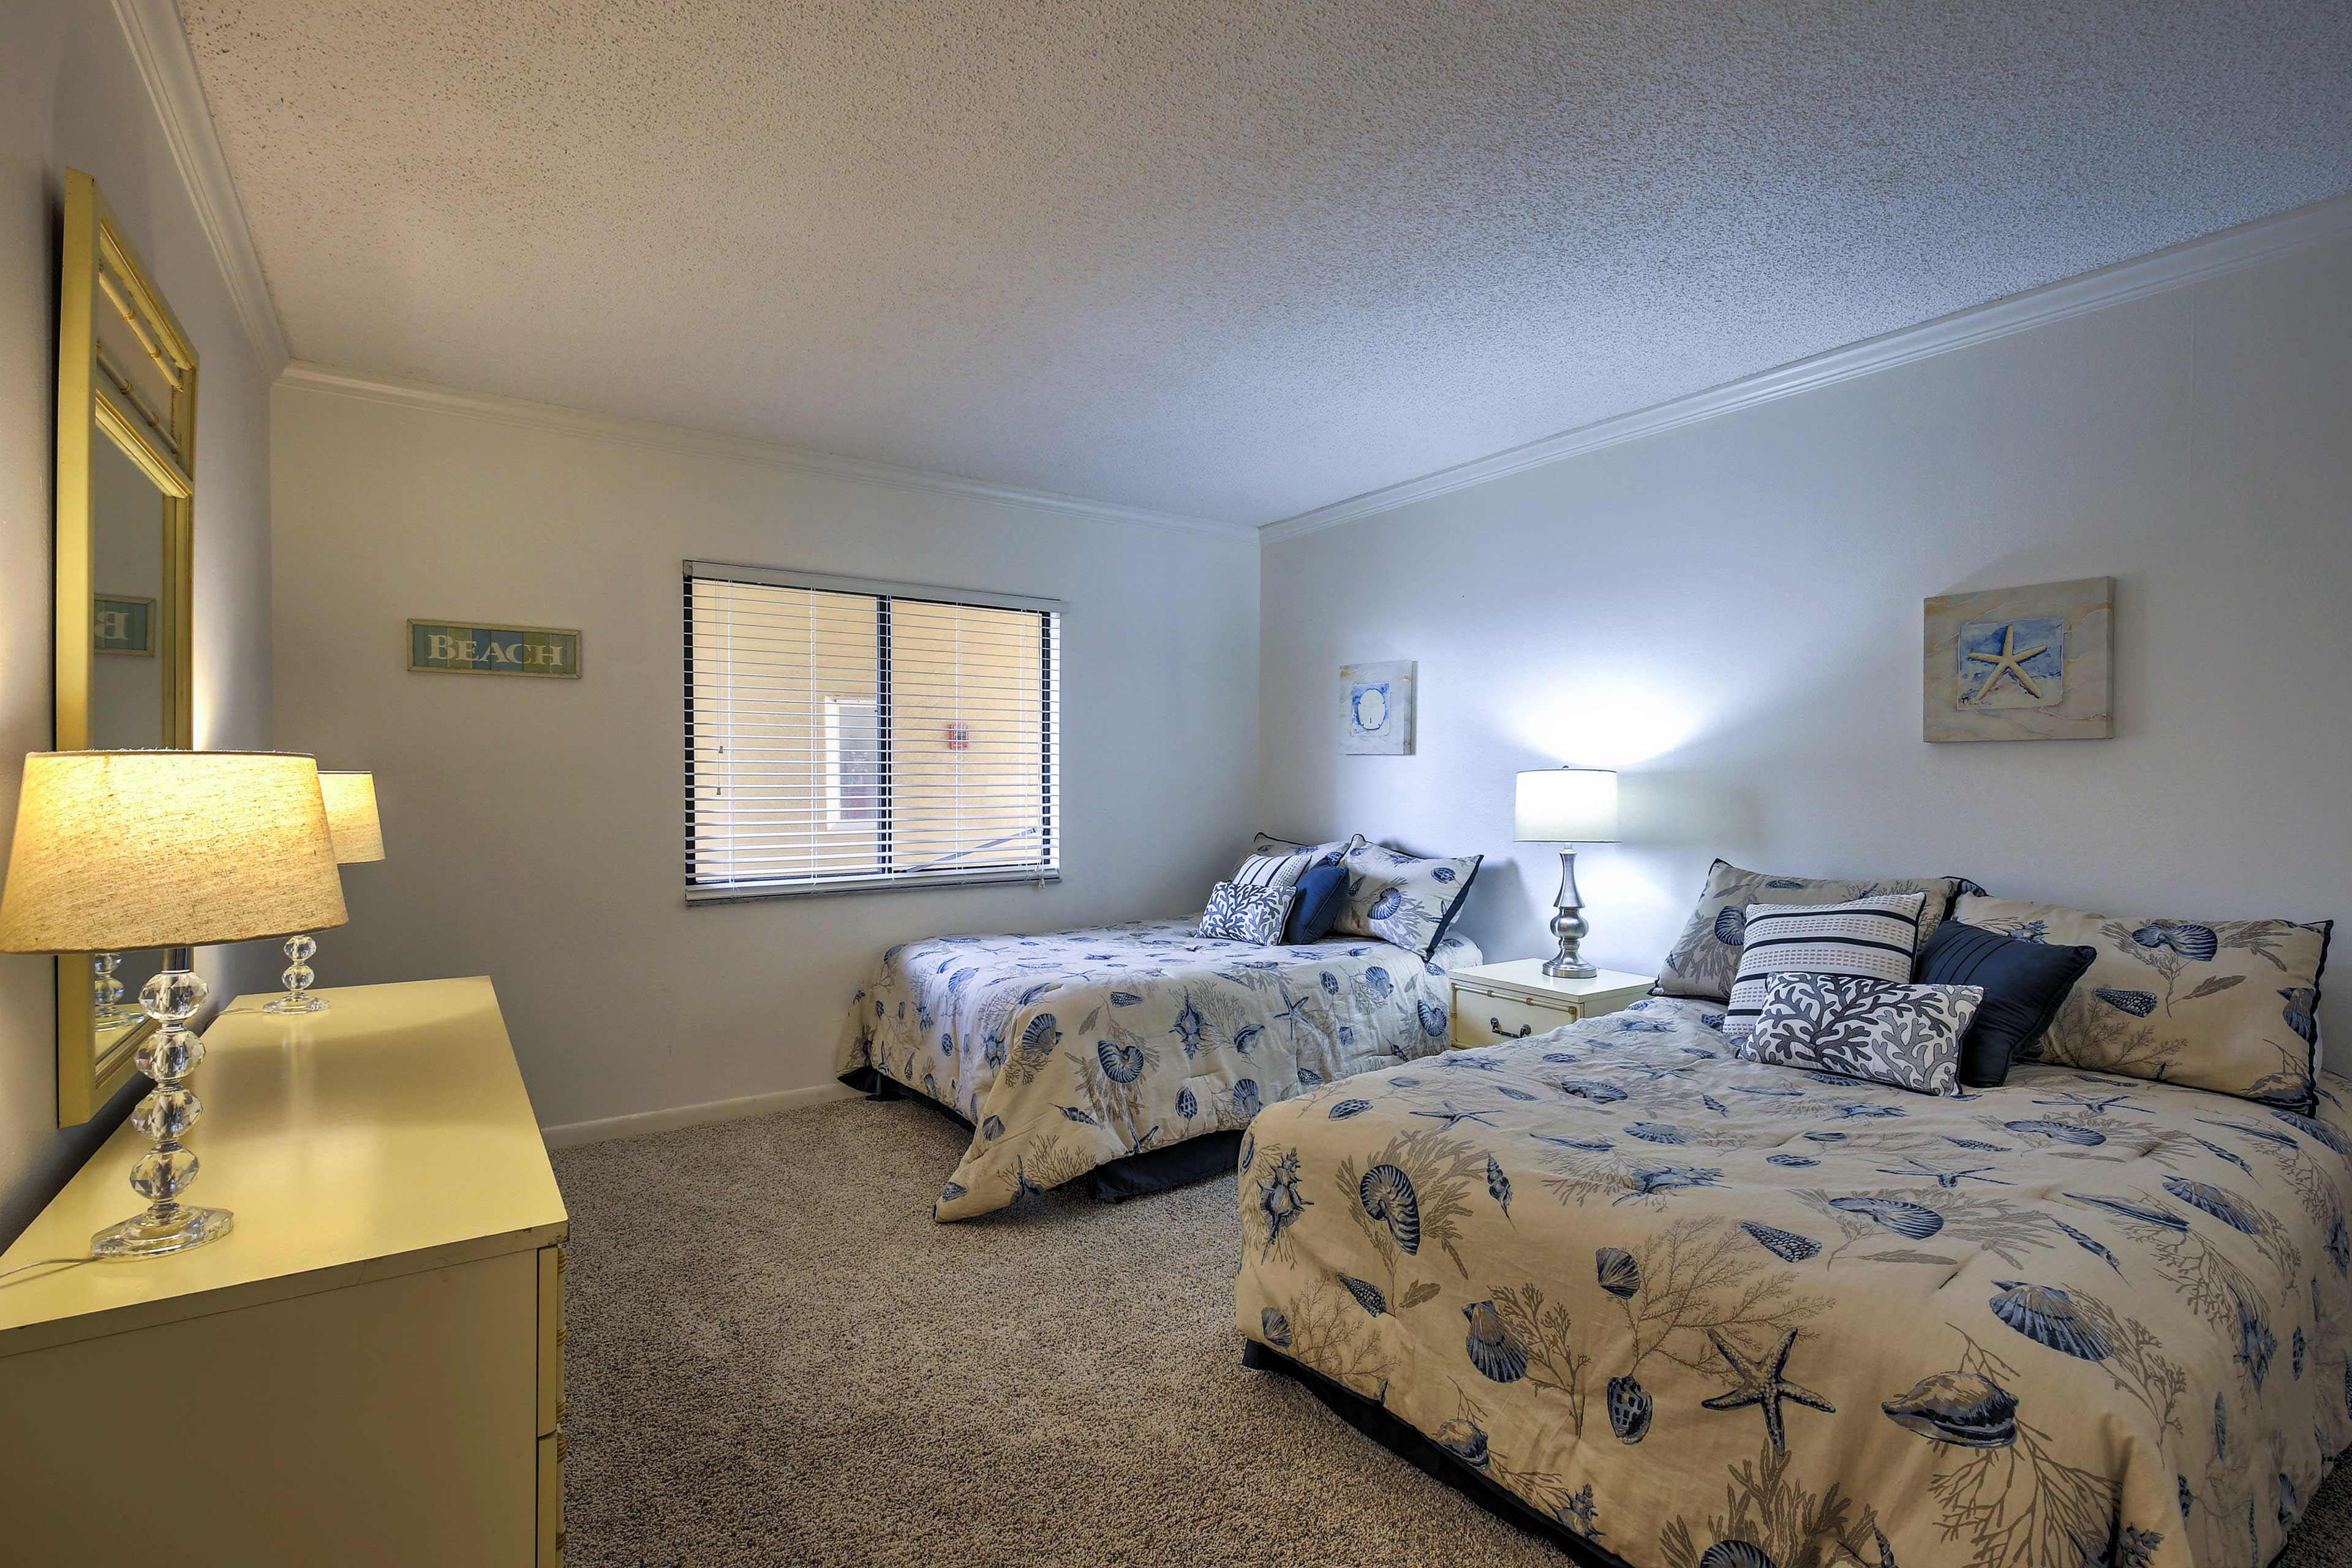 With 2 full beds, the second bedroom sleeps 4.